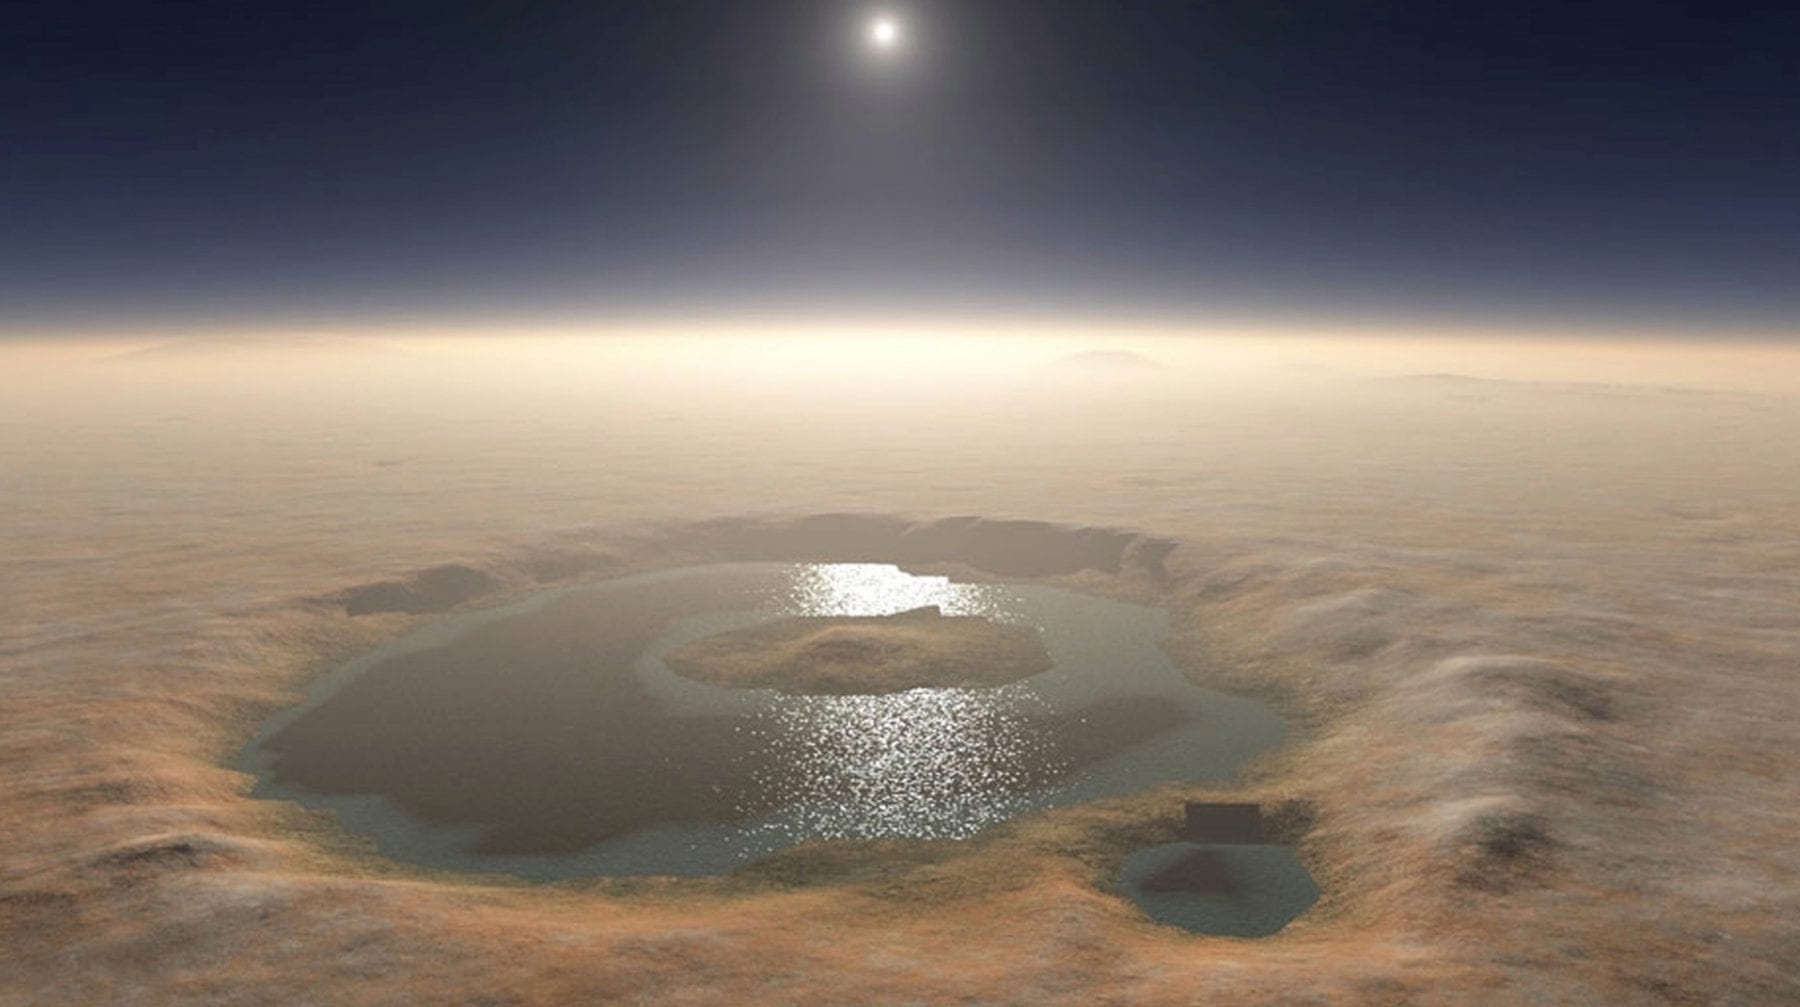 An illustration of the Gale Crater as it may have looked like filled with water billions of years ago. Credit: NASA/JPL-Caltech